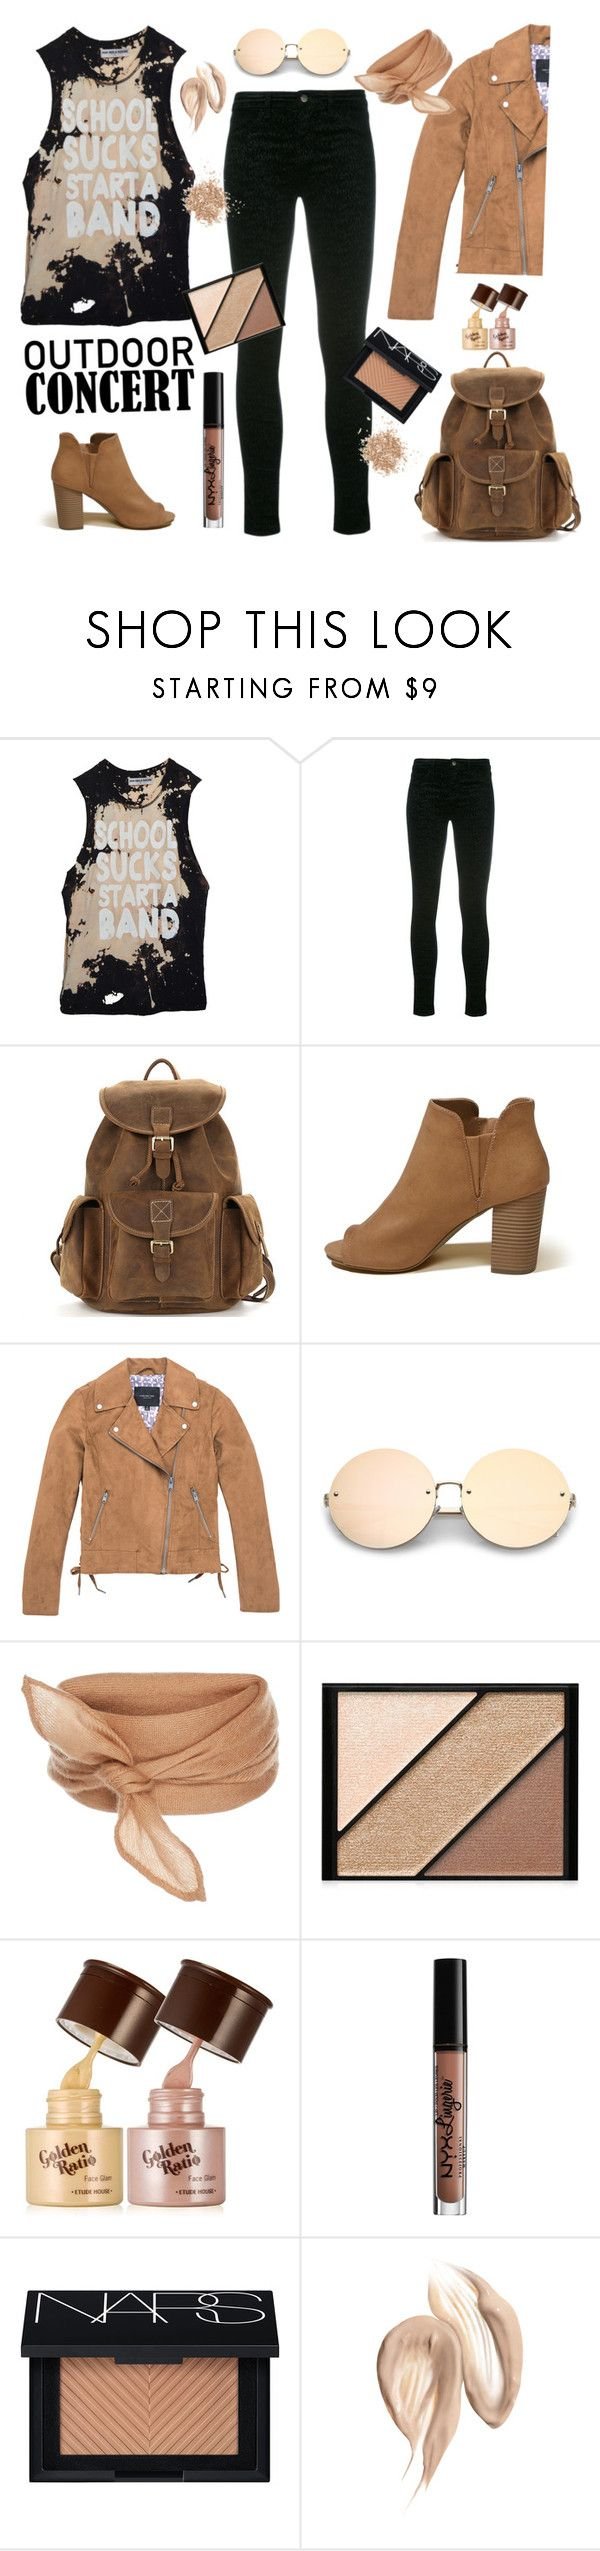 """""""Outdoor concert"""" by gul07 ❤ liked on Polyvore featuring High Heels Suicide, J Brand, Hollister Co., Marc New York, Elizabeth Arden, NYX, NARS Cosmetics, Topshop, outdoorconcert and 60secondstyle"""